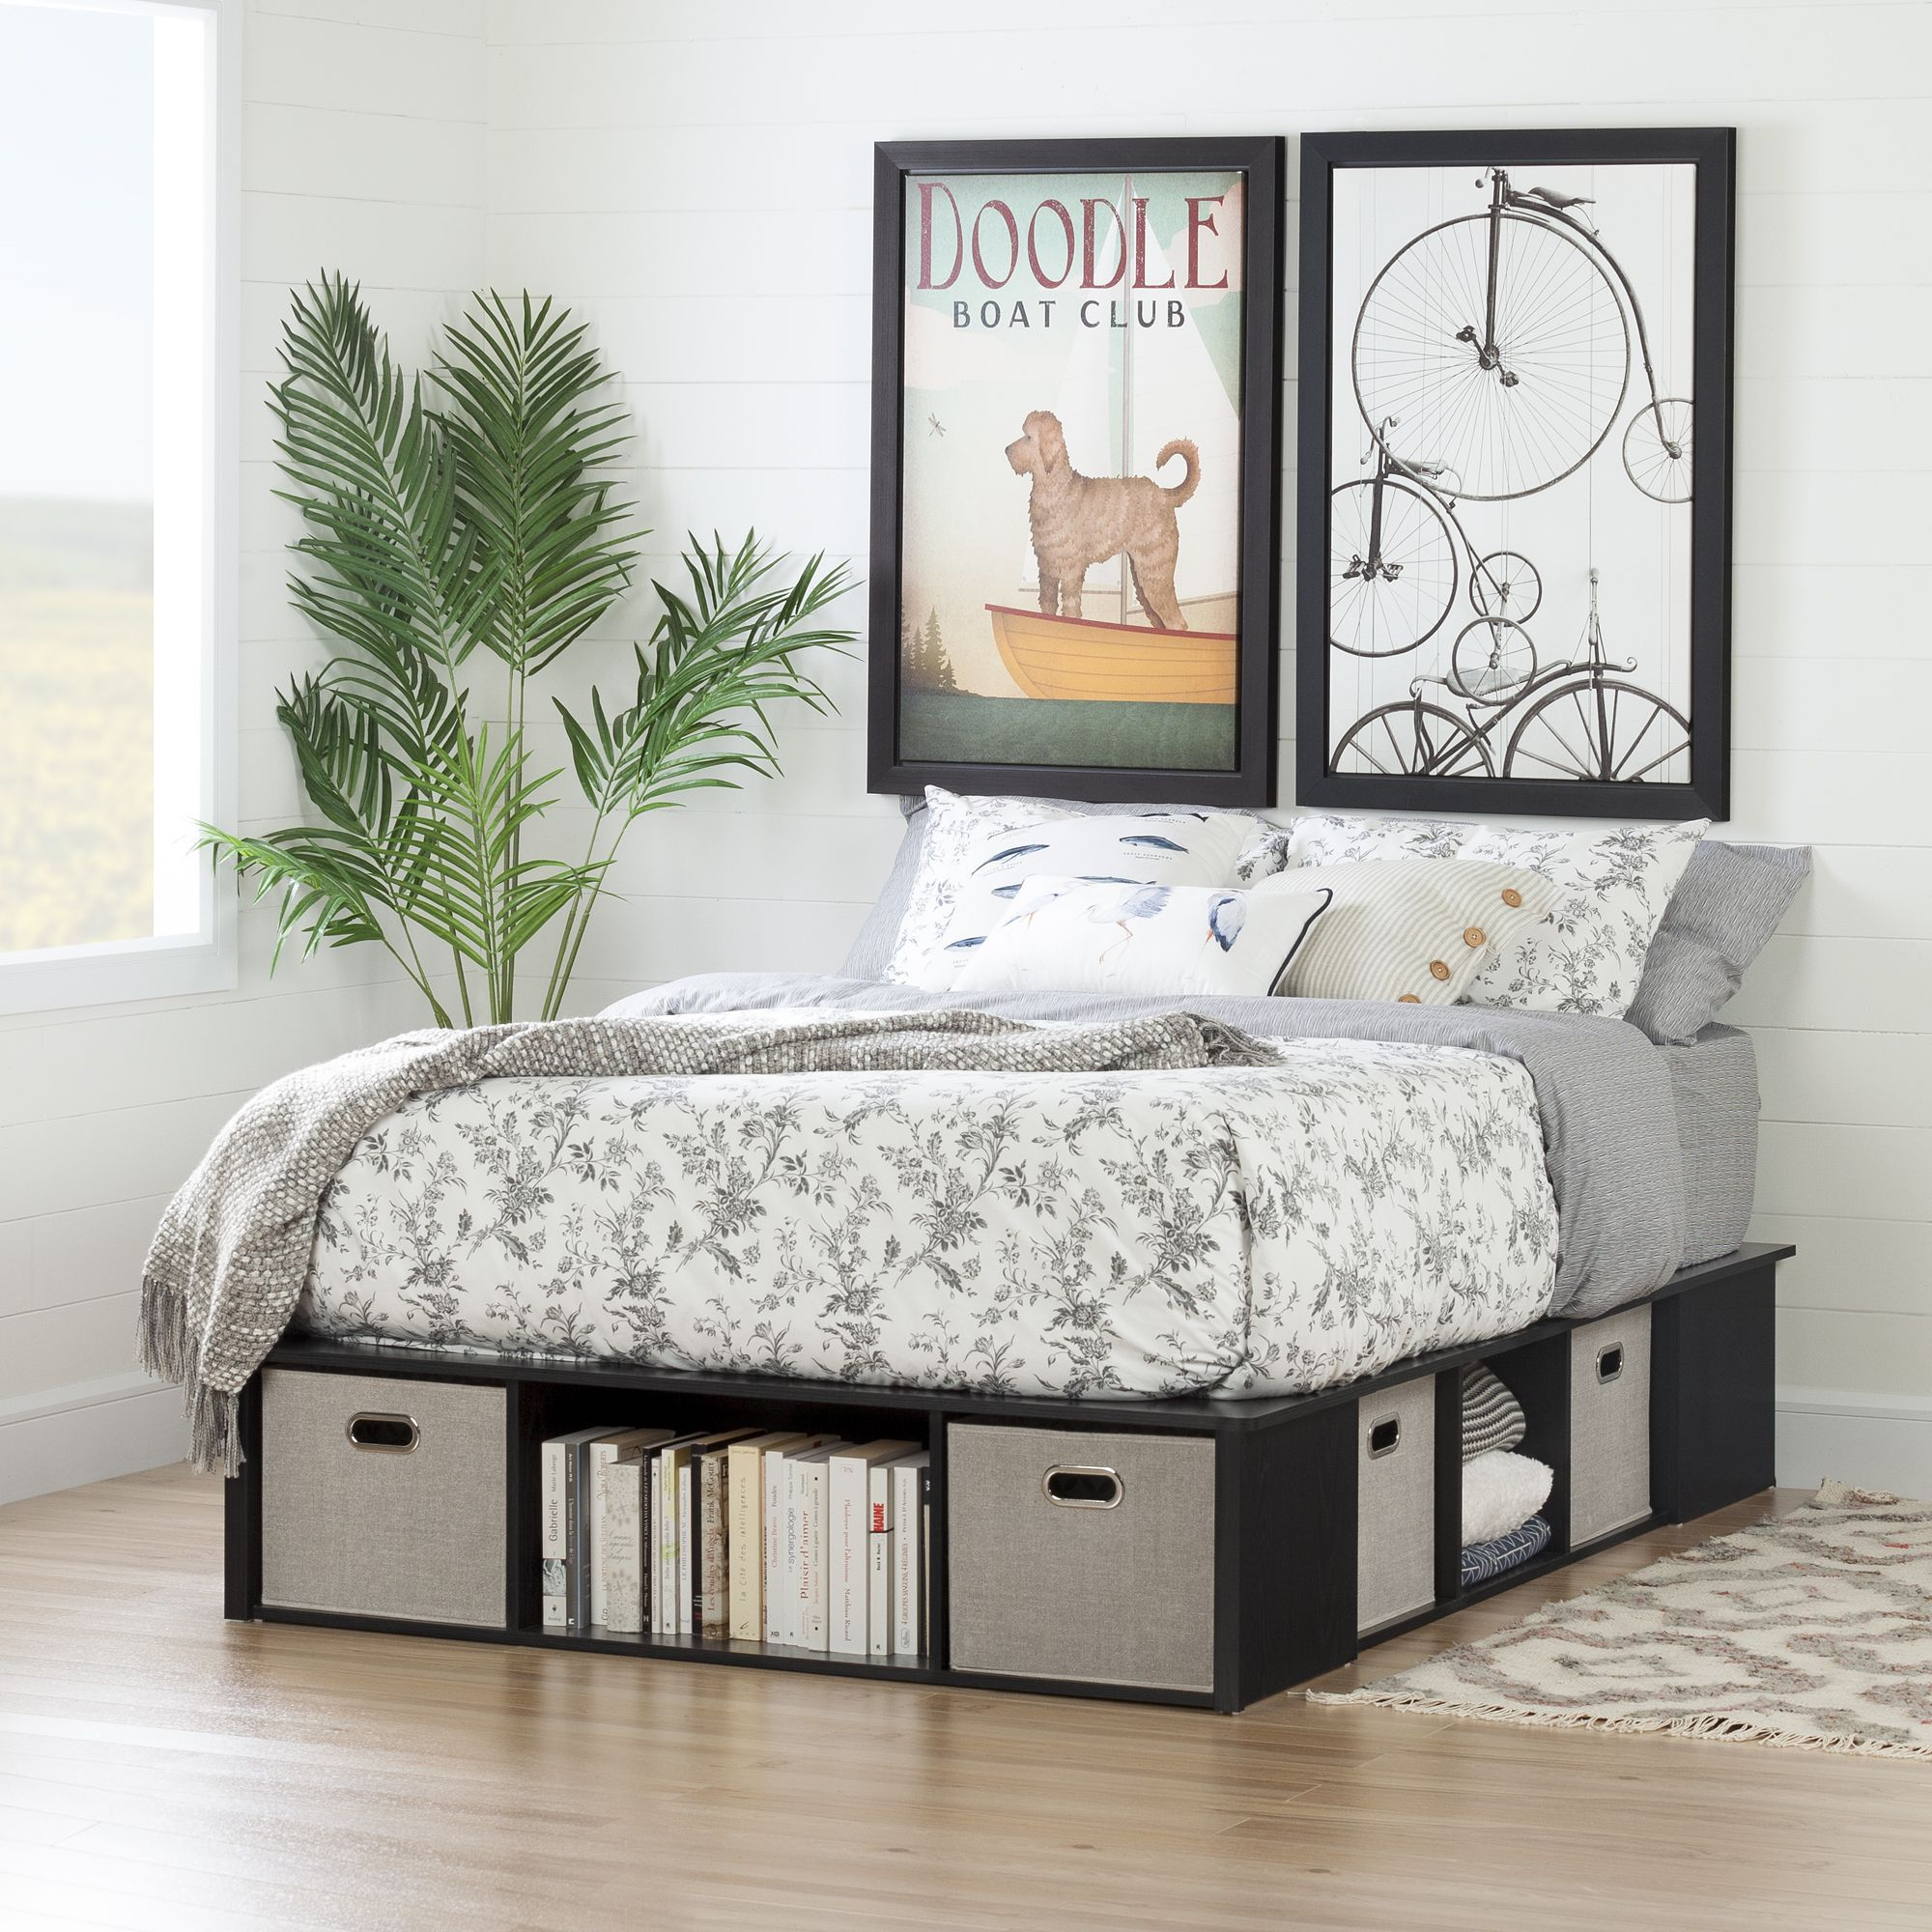 Superior South Shore Flexible Black Oak Full Size Platform Bed With Storage And  Baskets 54 Inches (Flexible Black Oak Full Platform Bed And Baskets)